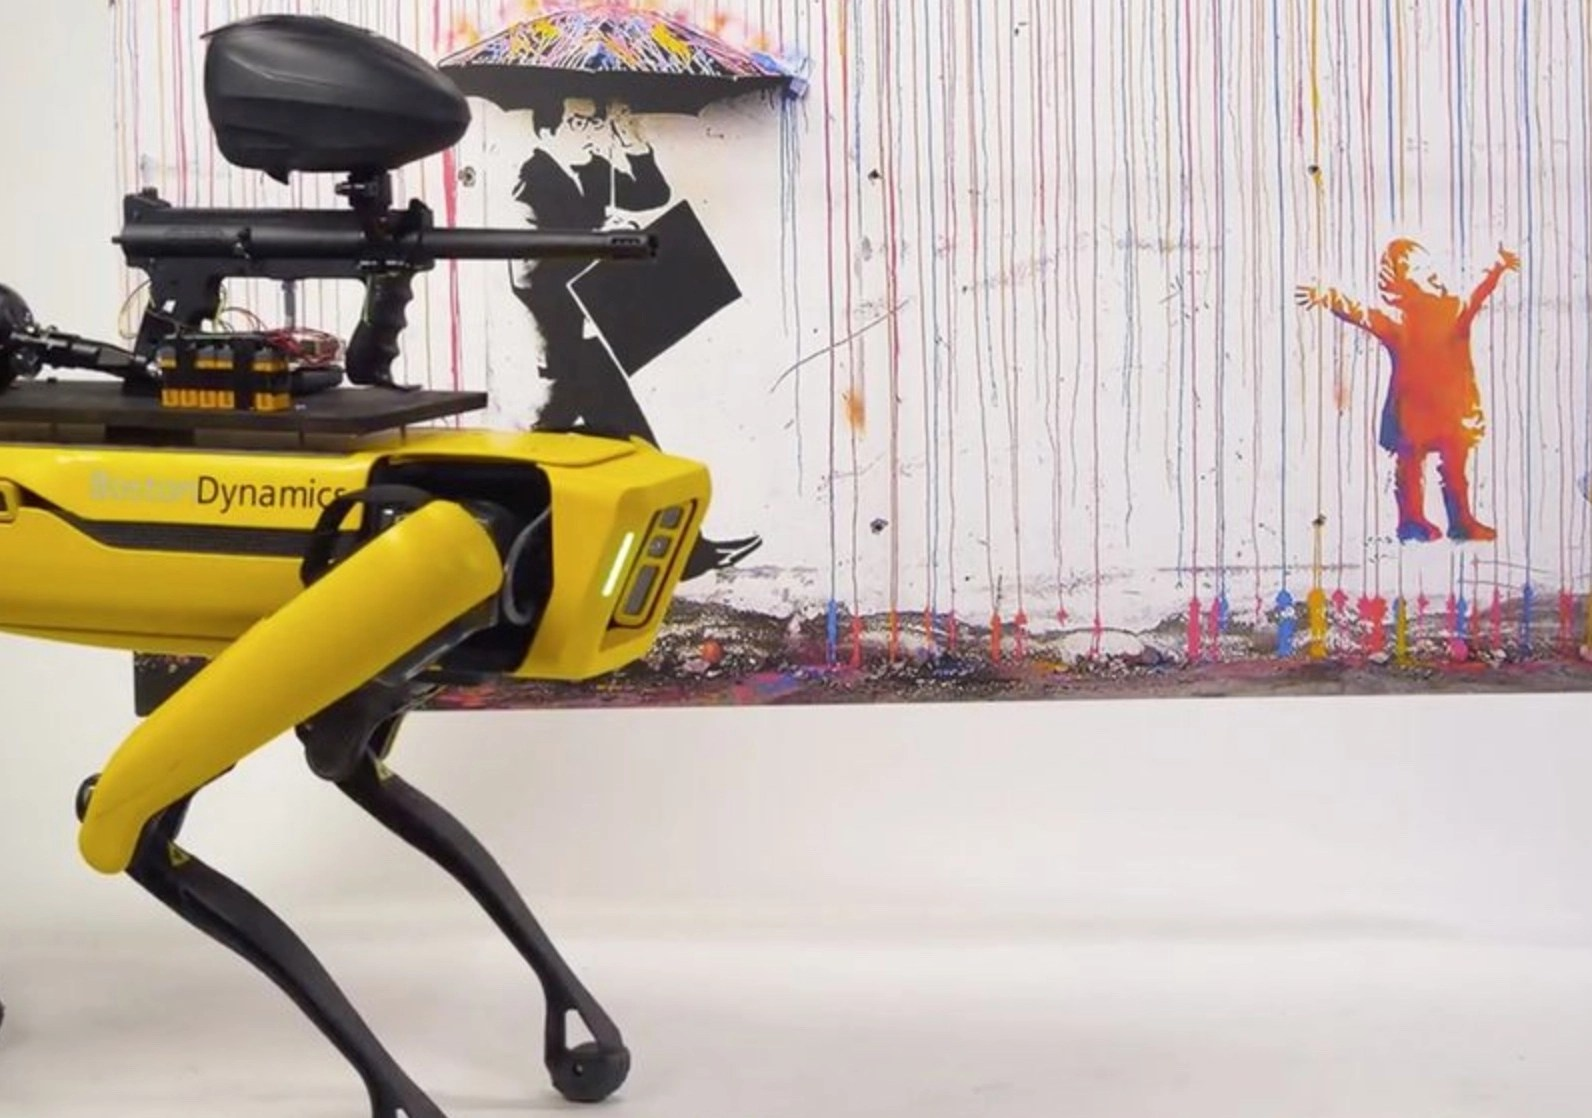 Artists outfitted robot dog Spot with a paintball gun in commentary on futuristic killer robots, just as NYDP deploys the same robot